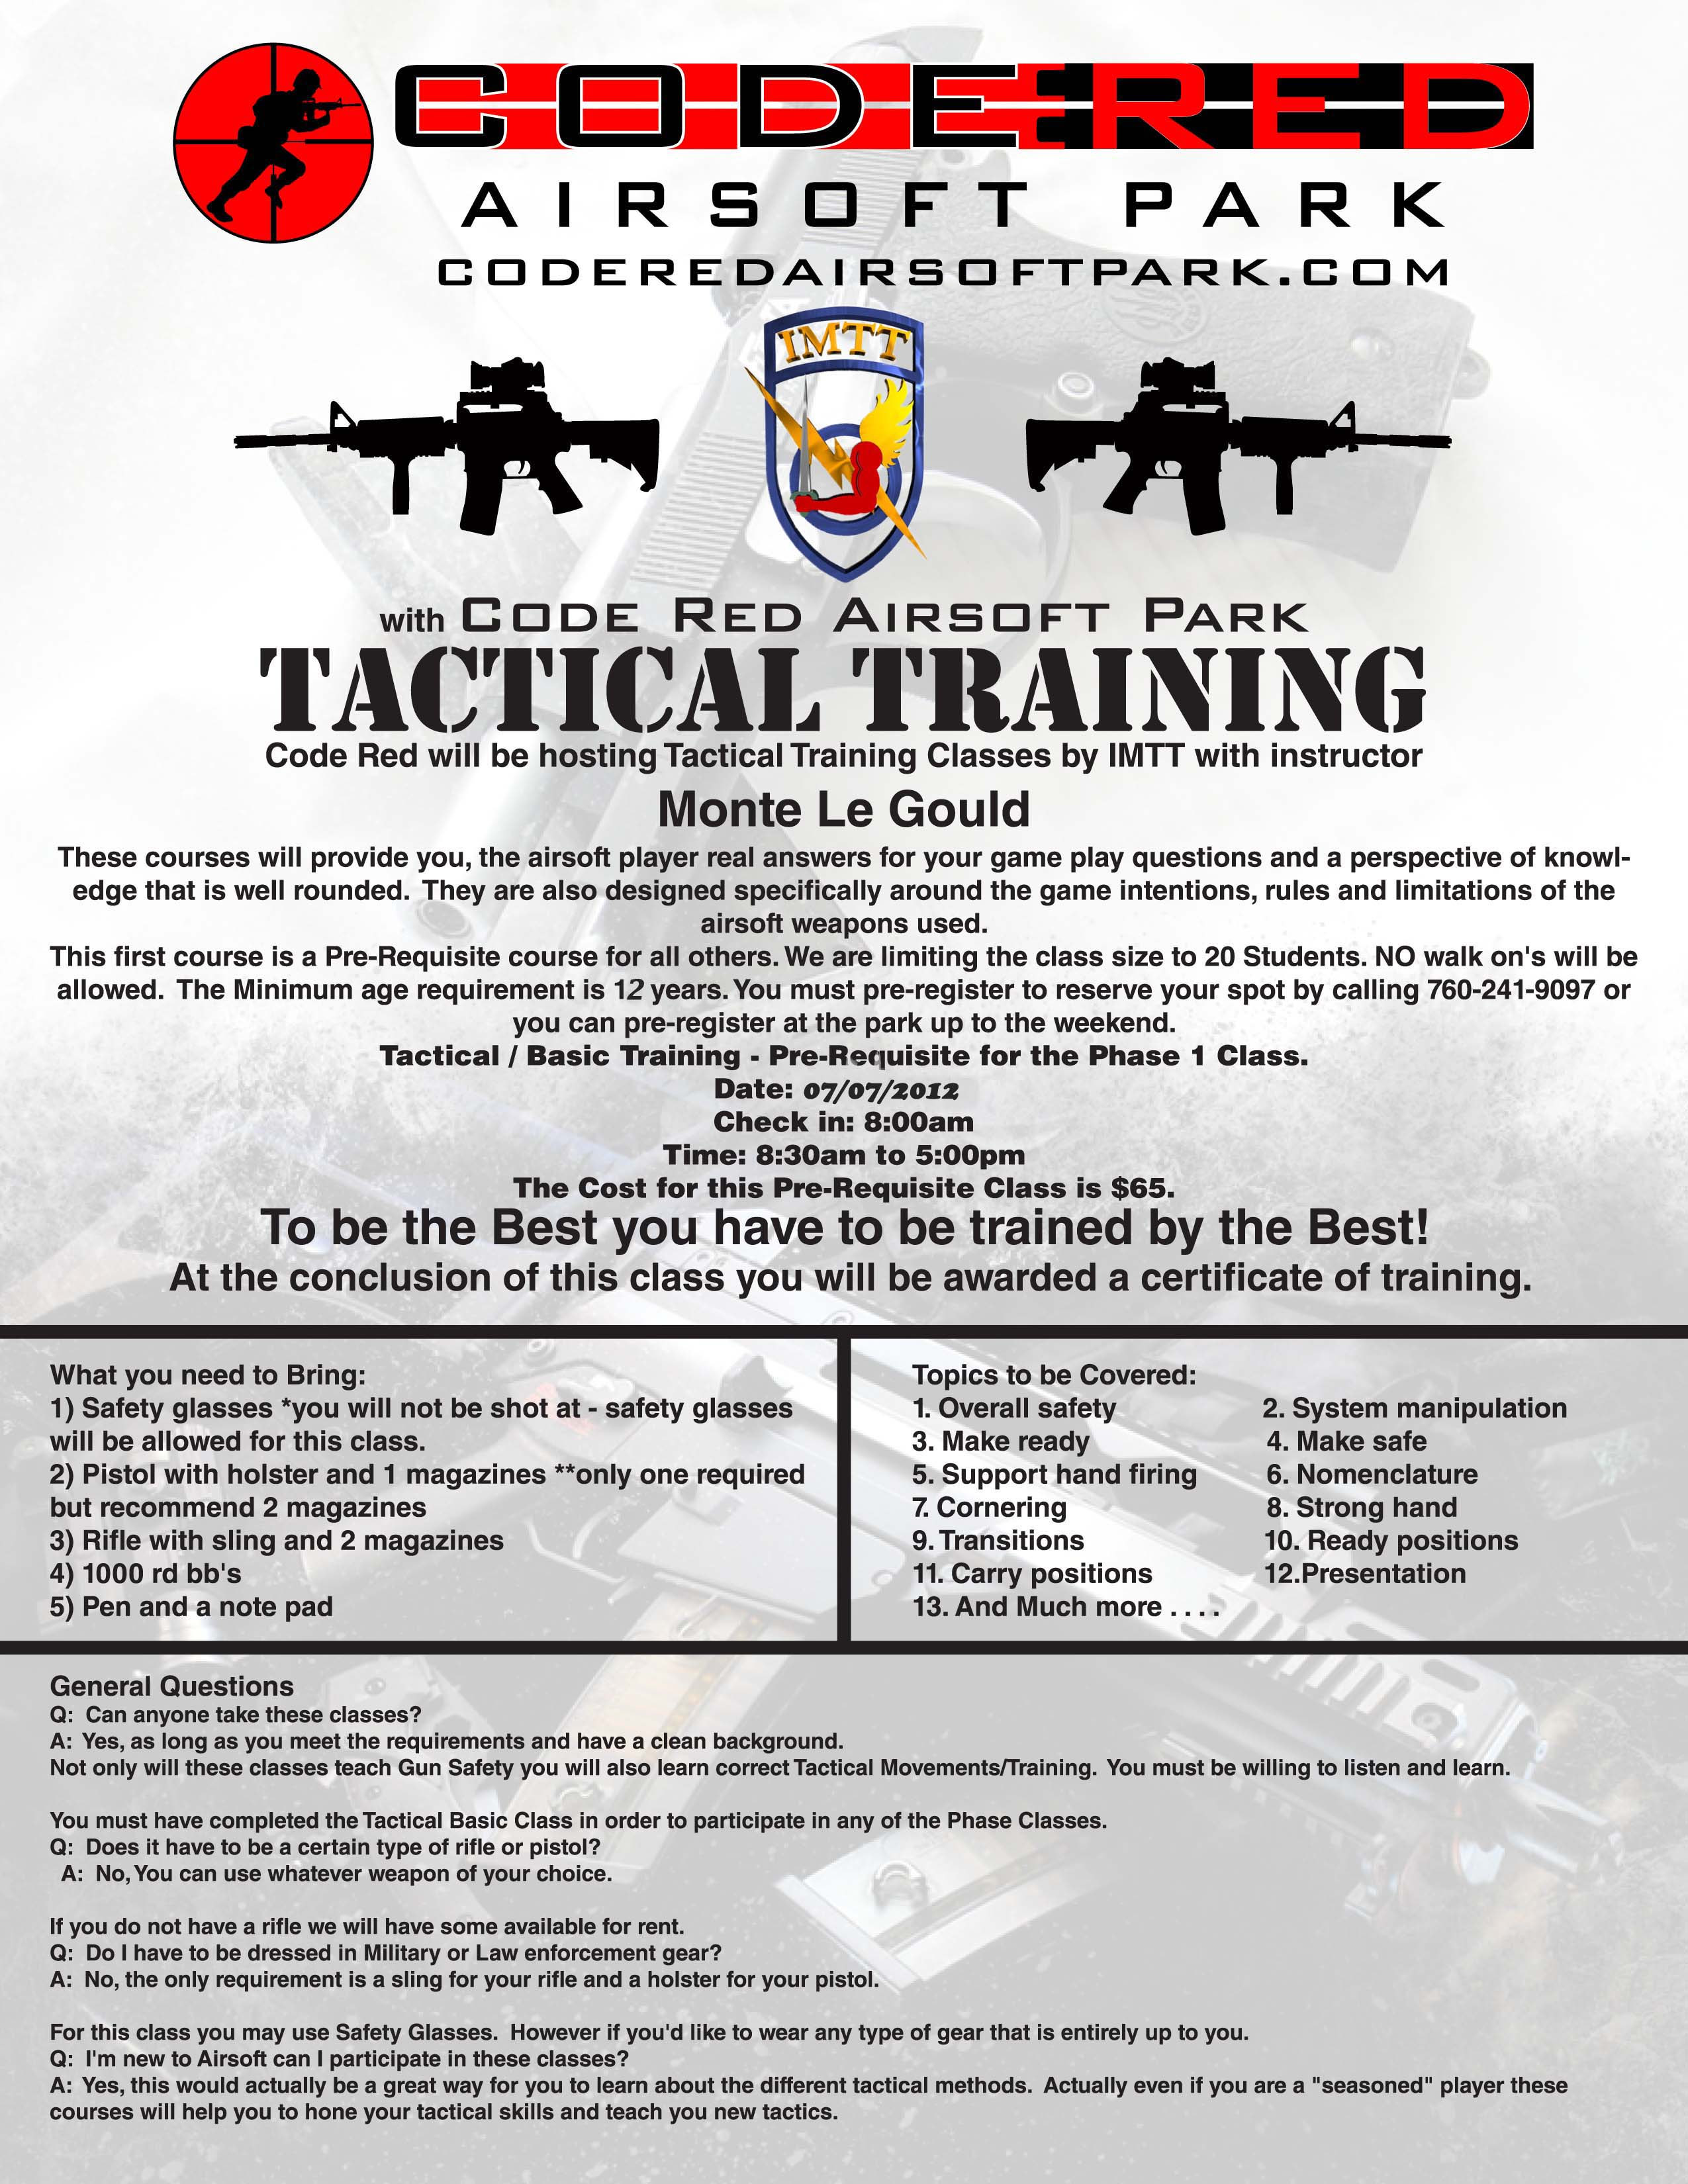 Code Red Airsoft Park | Tactical Training